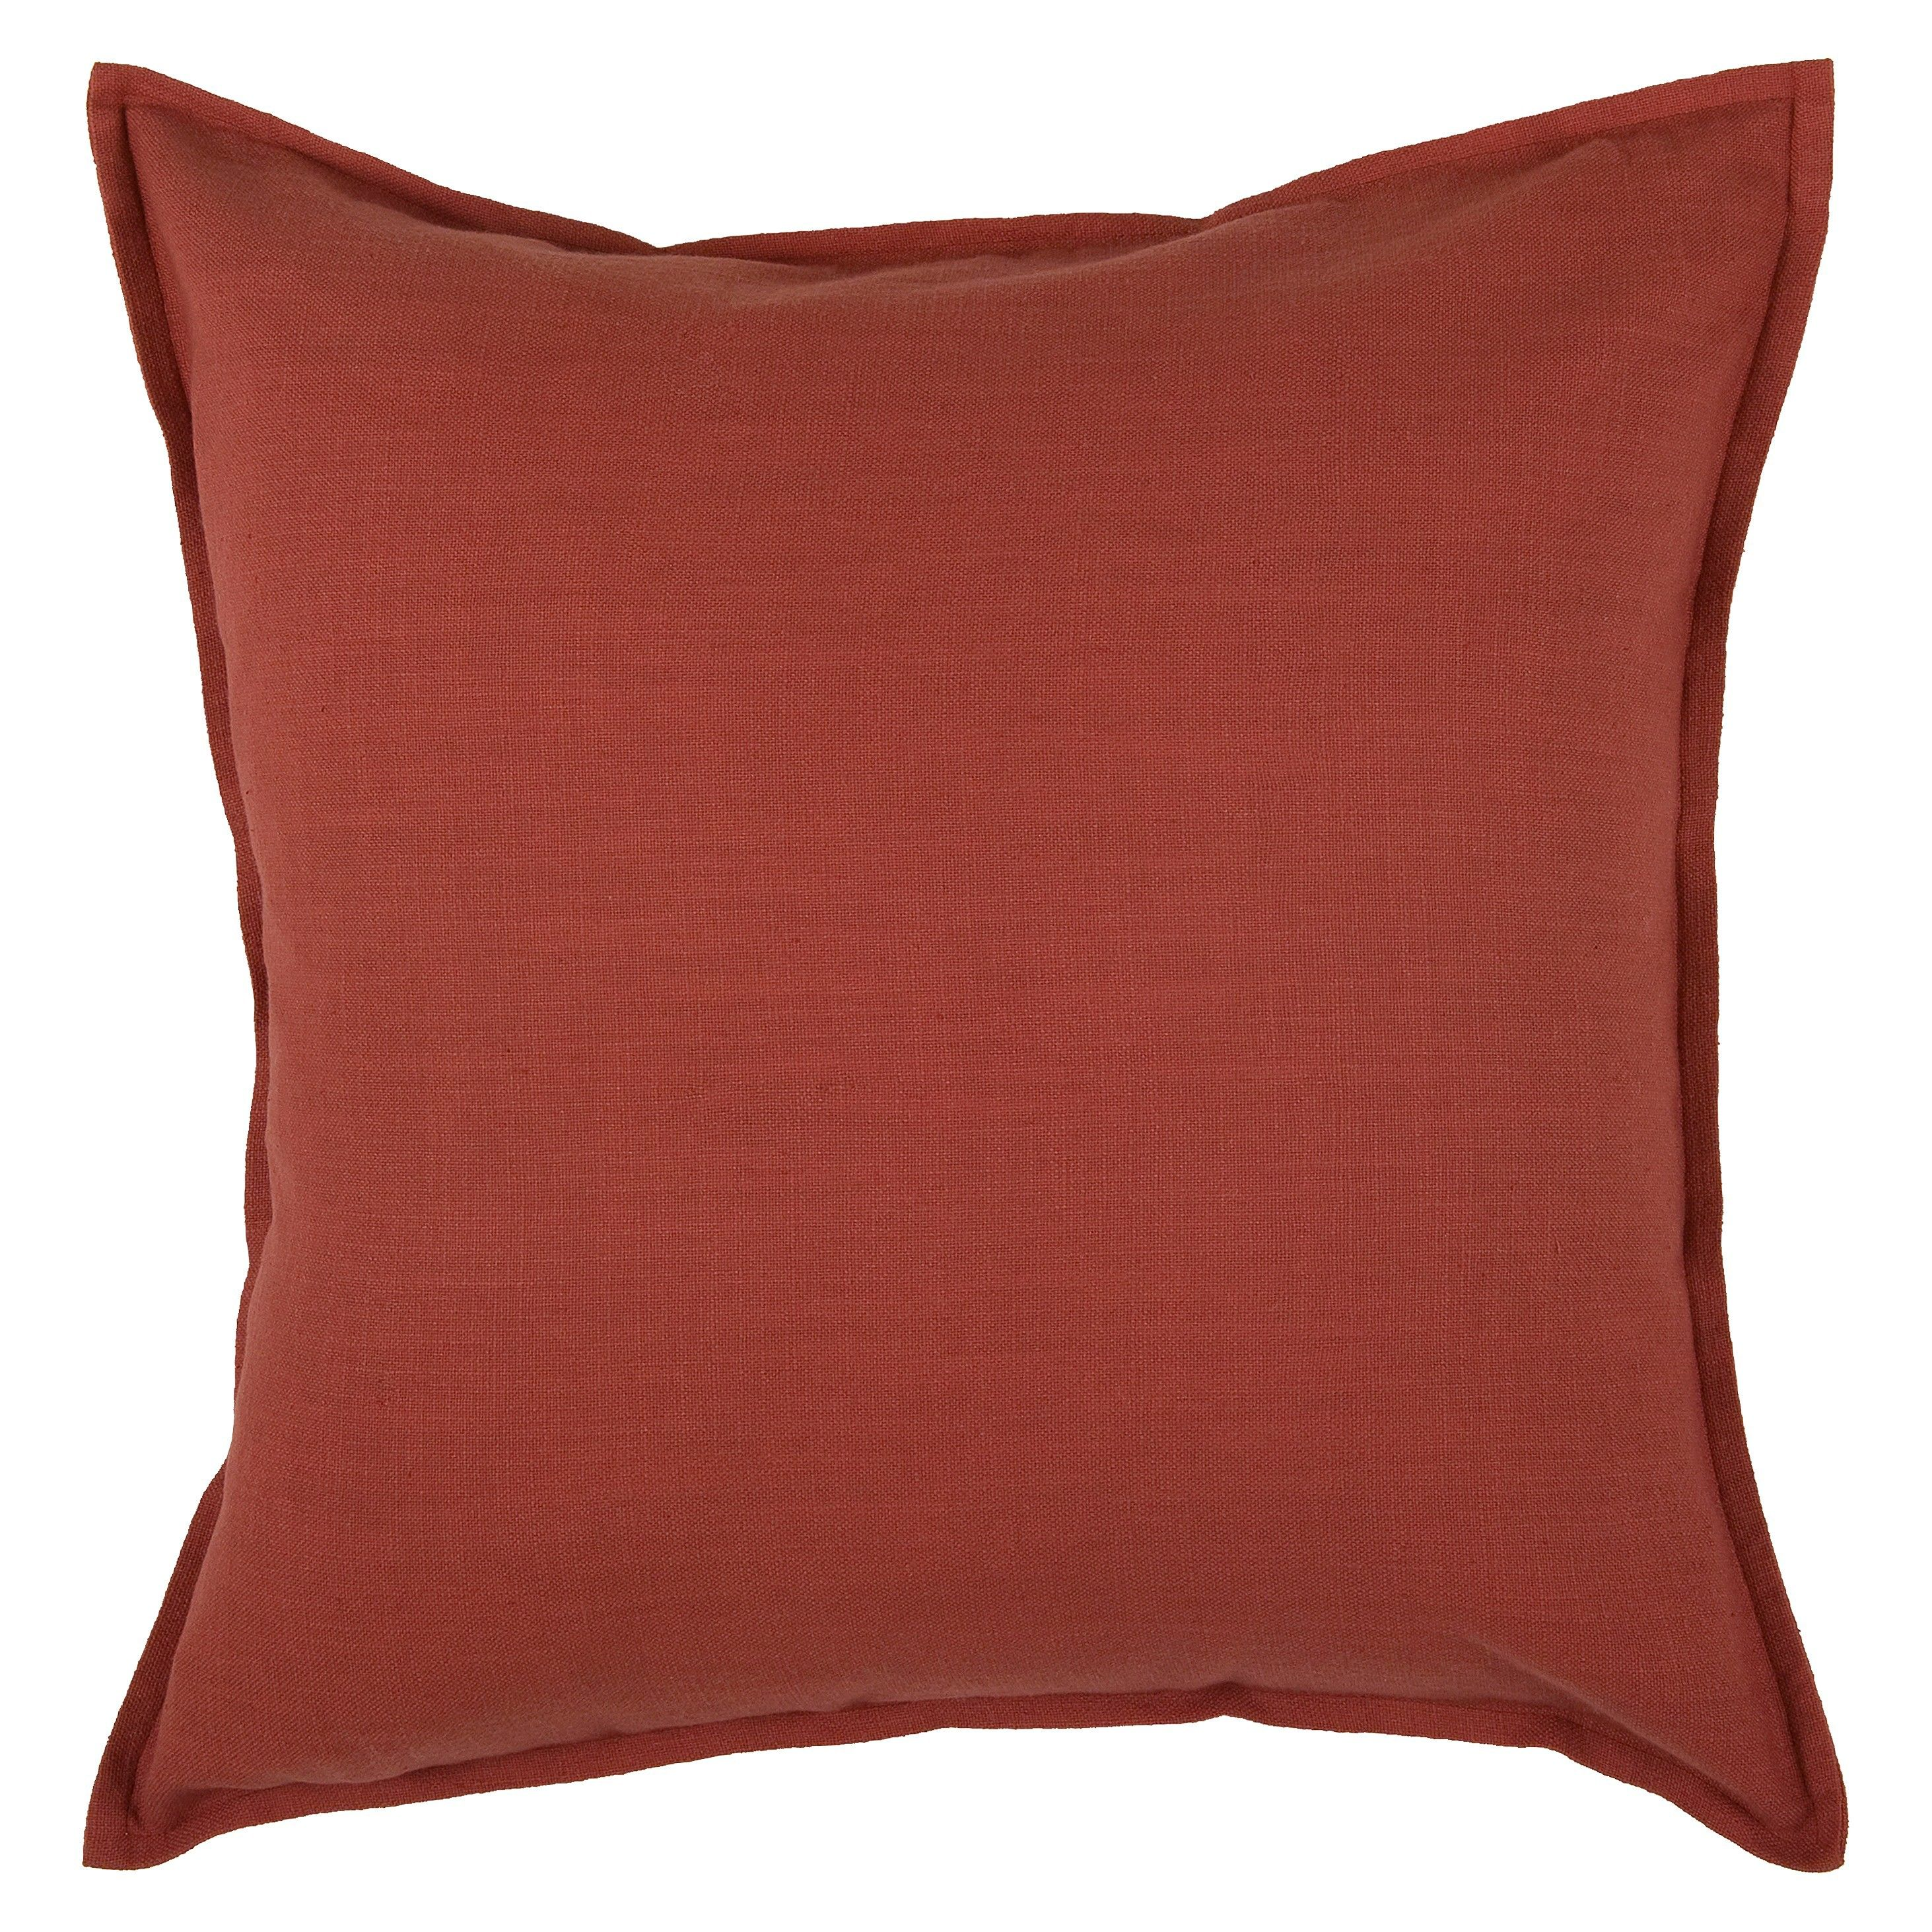 Rizzy Home Solid Decorative Pillow : Target